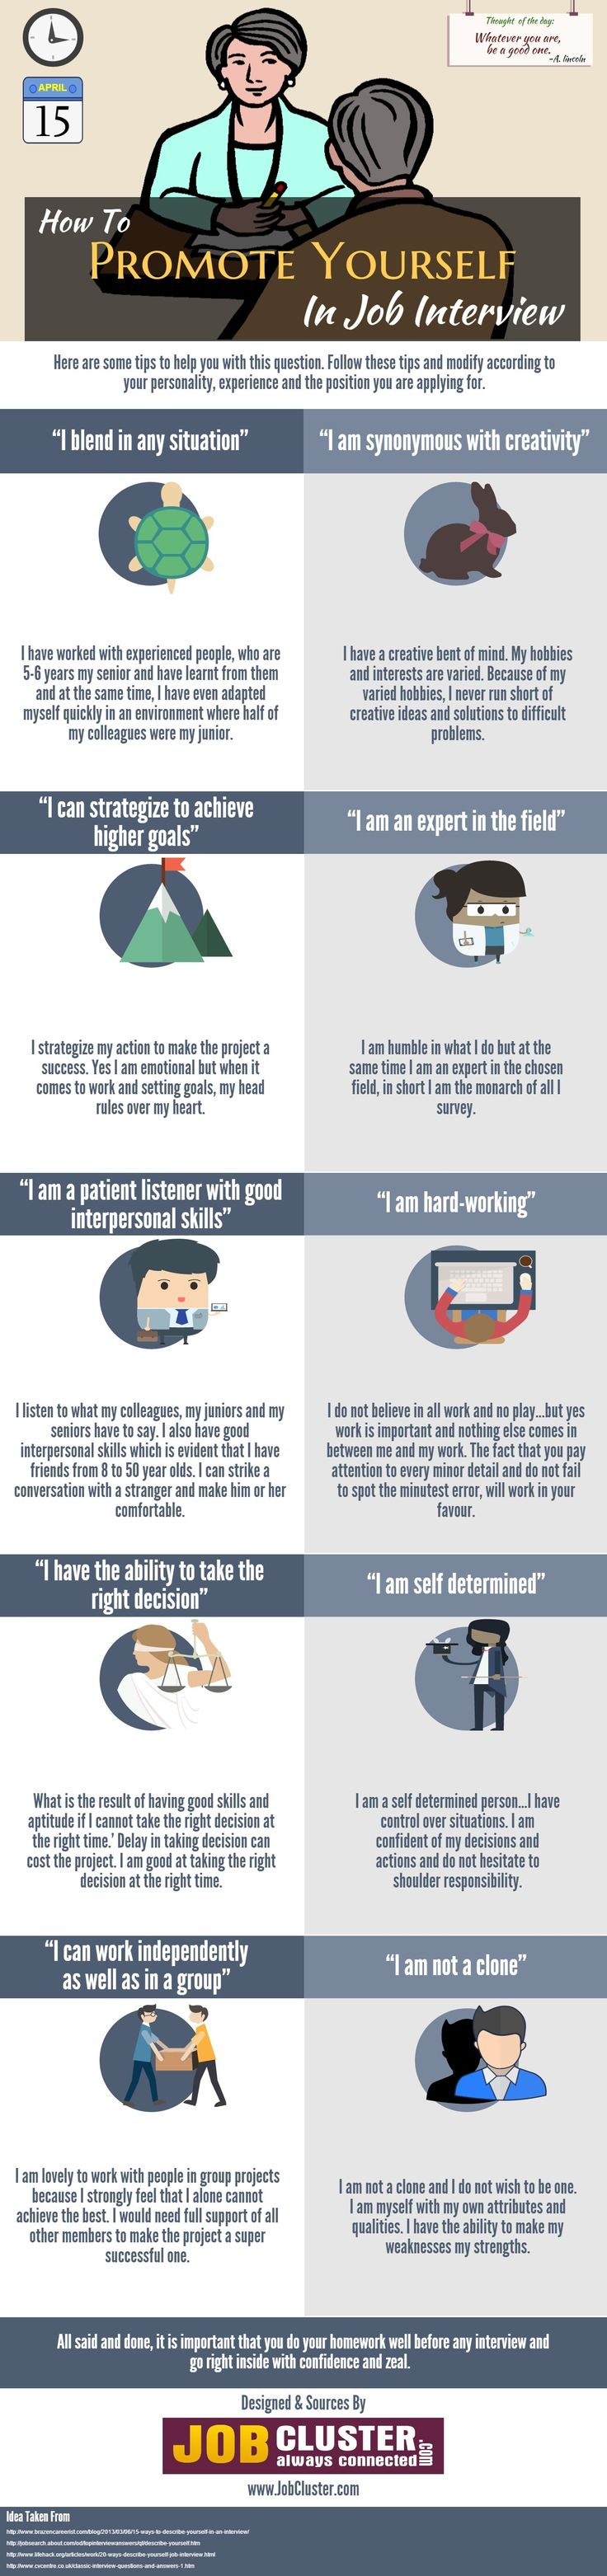 Self Promotion in Job Interview Infographic Marketing